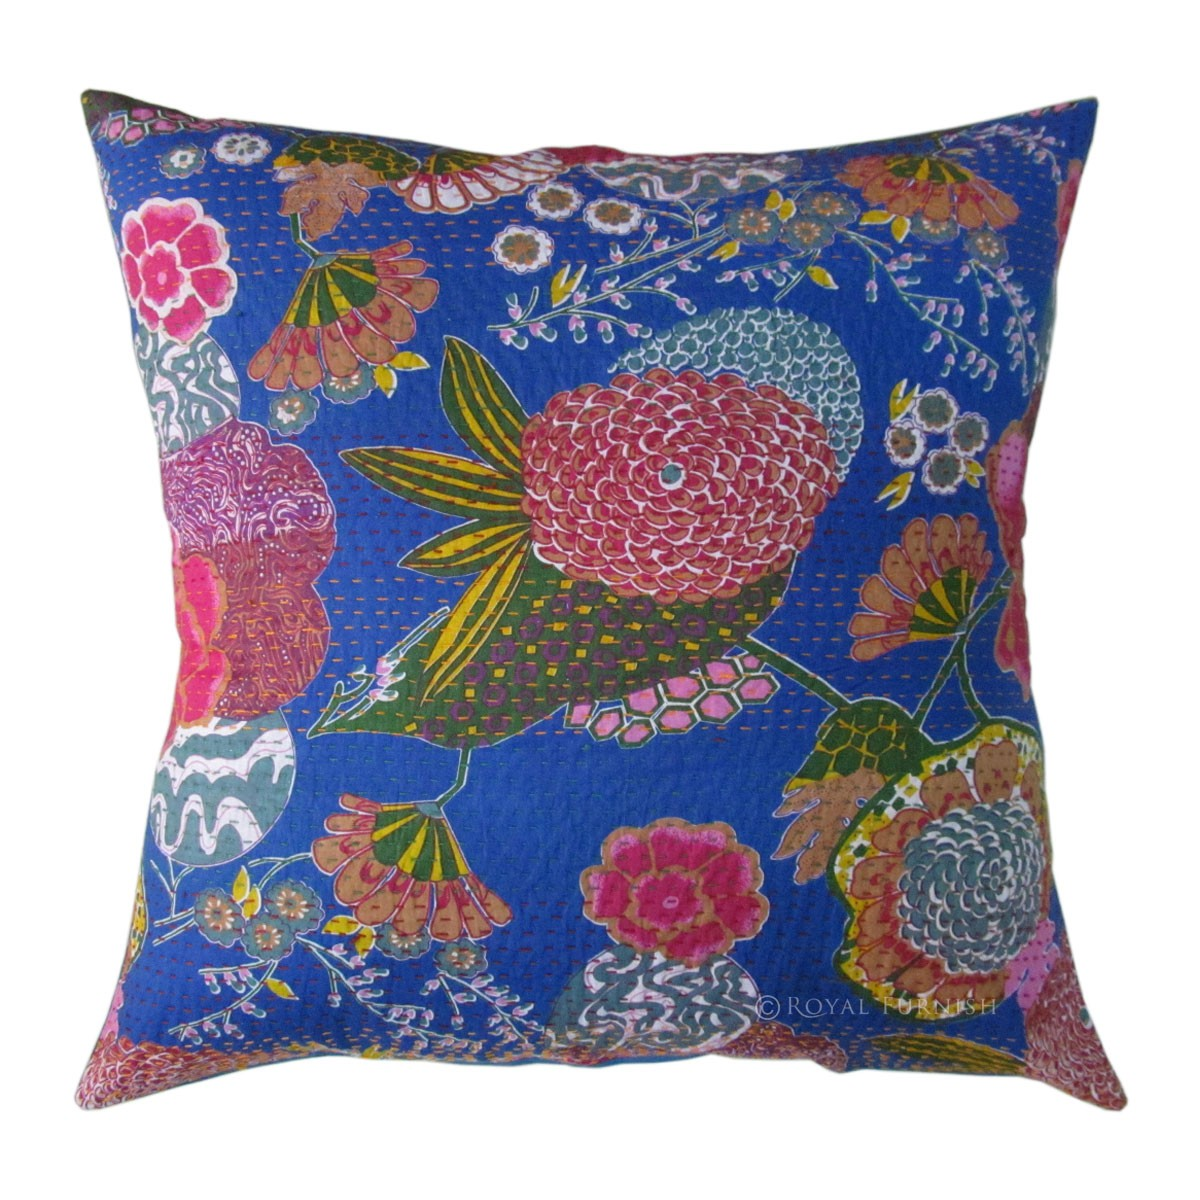 Decorative Pillow Covers 24x24